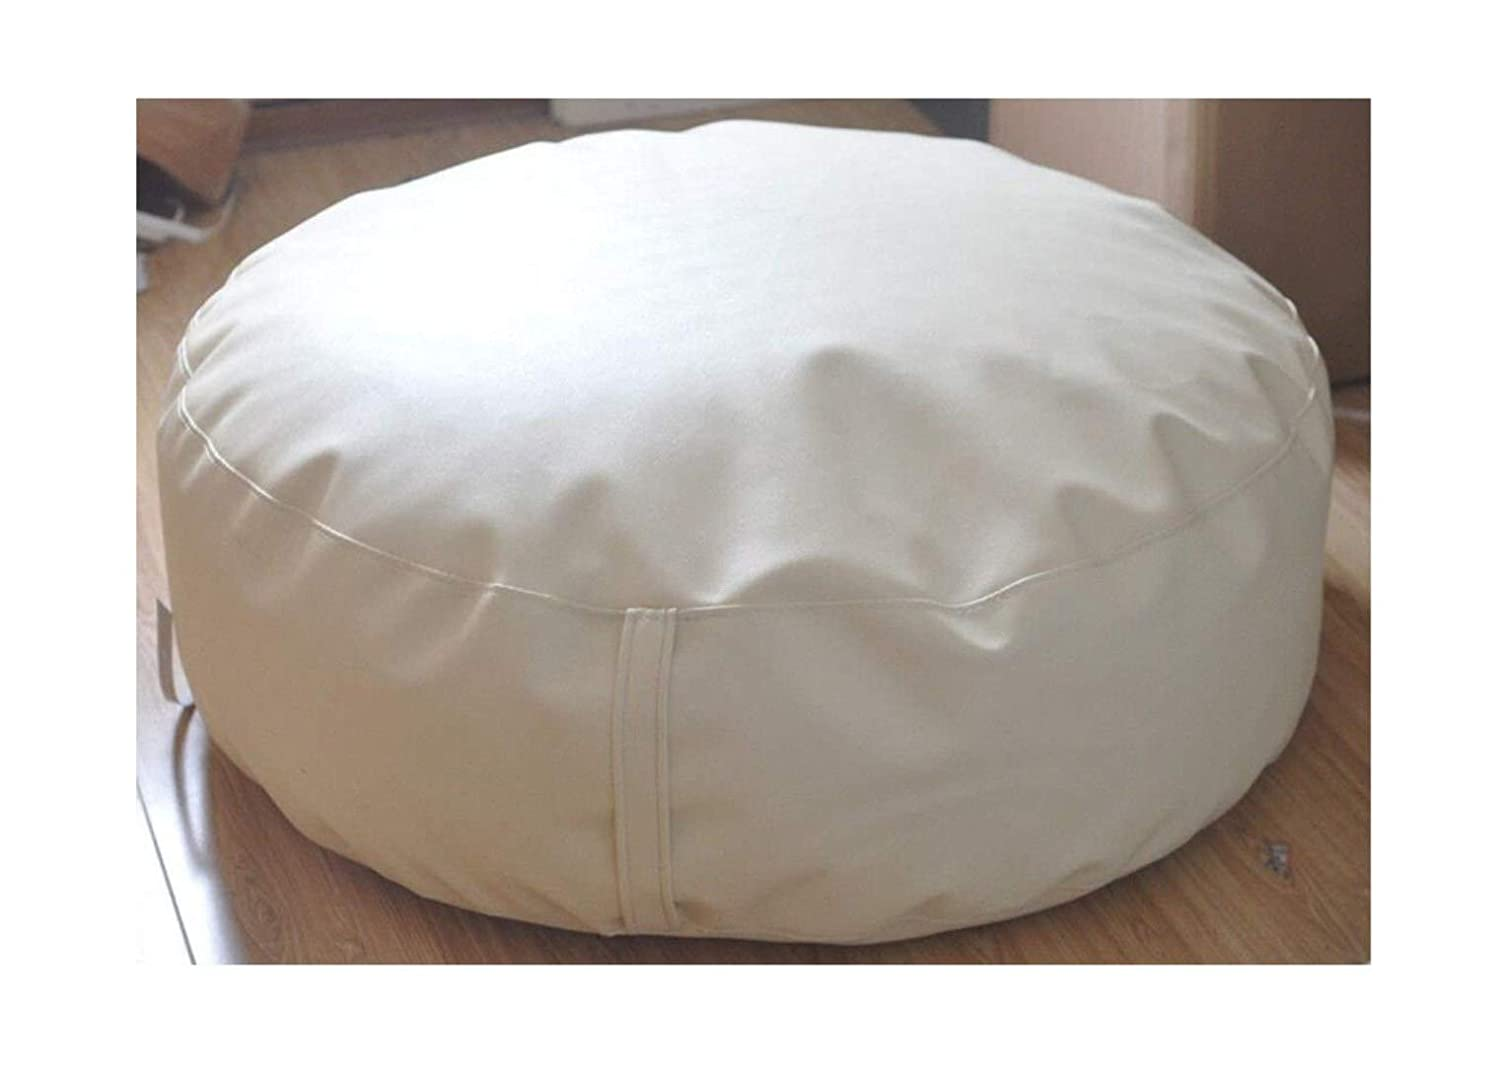 31X16INCH Newborn Posing Beanbag Photography Studio Prop | Bean Filling NOT Included | bakdropday D-037